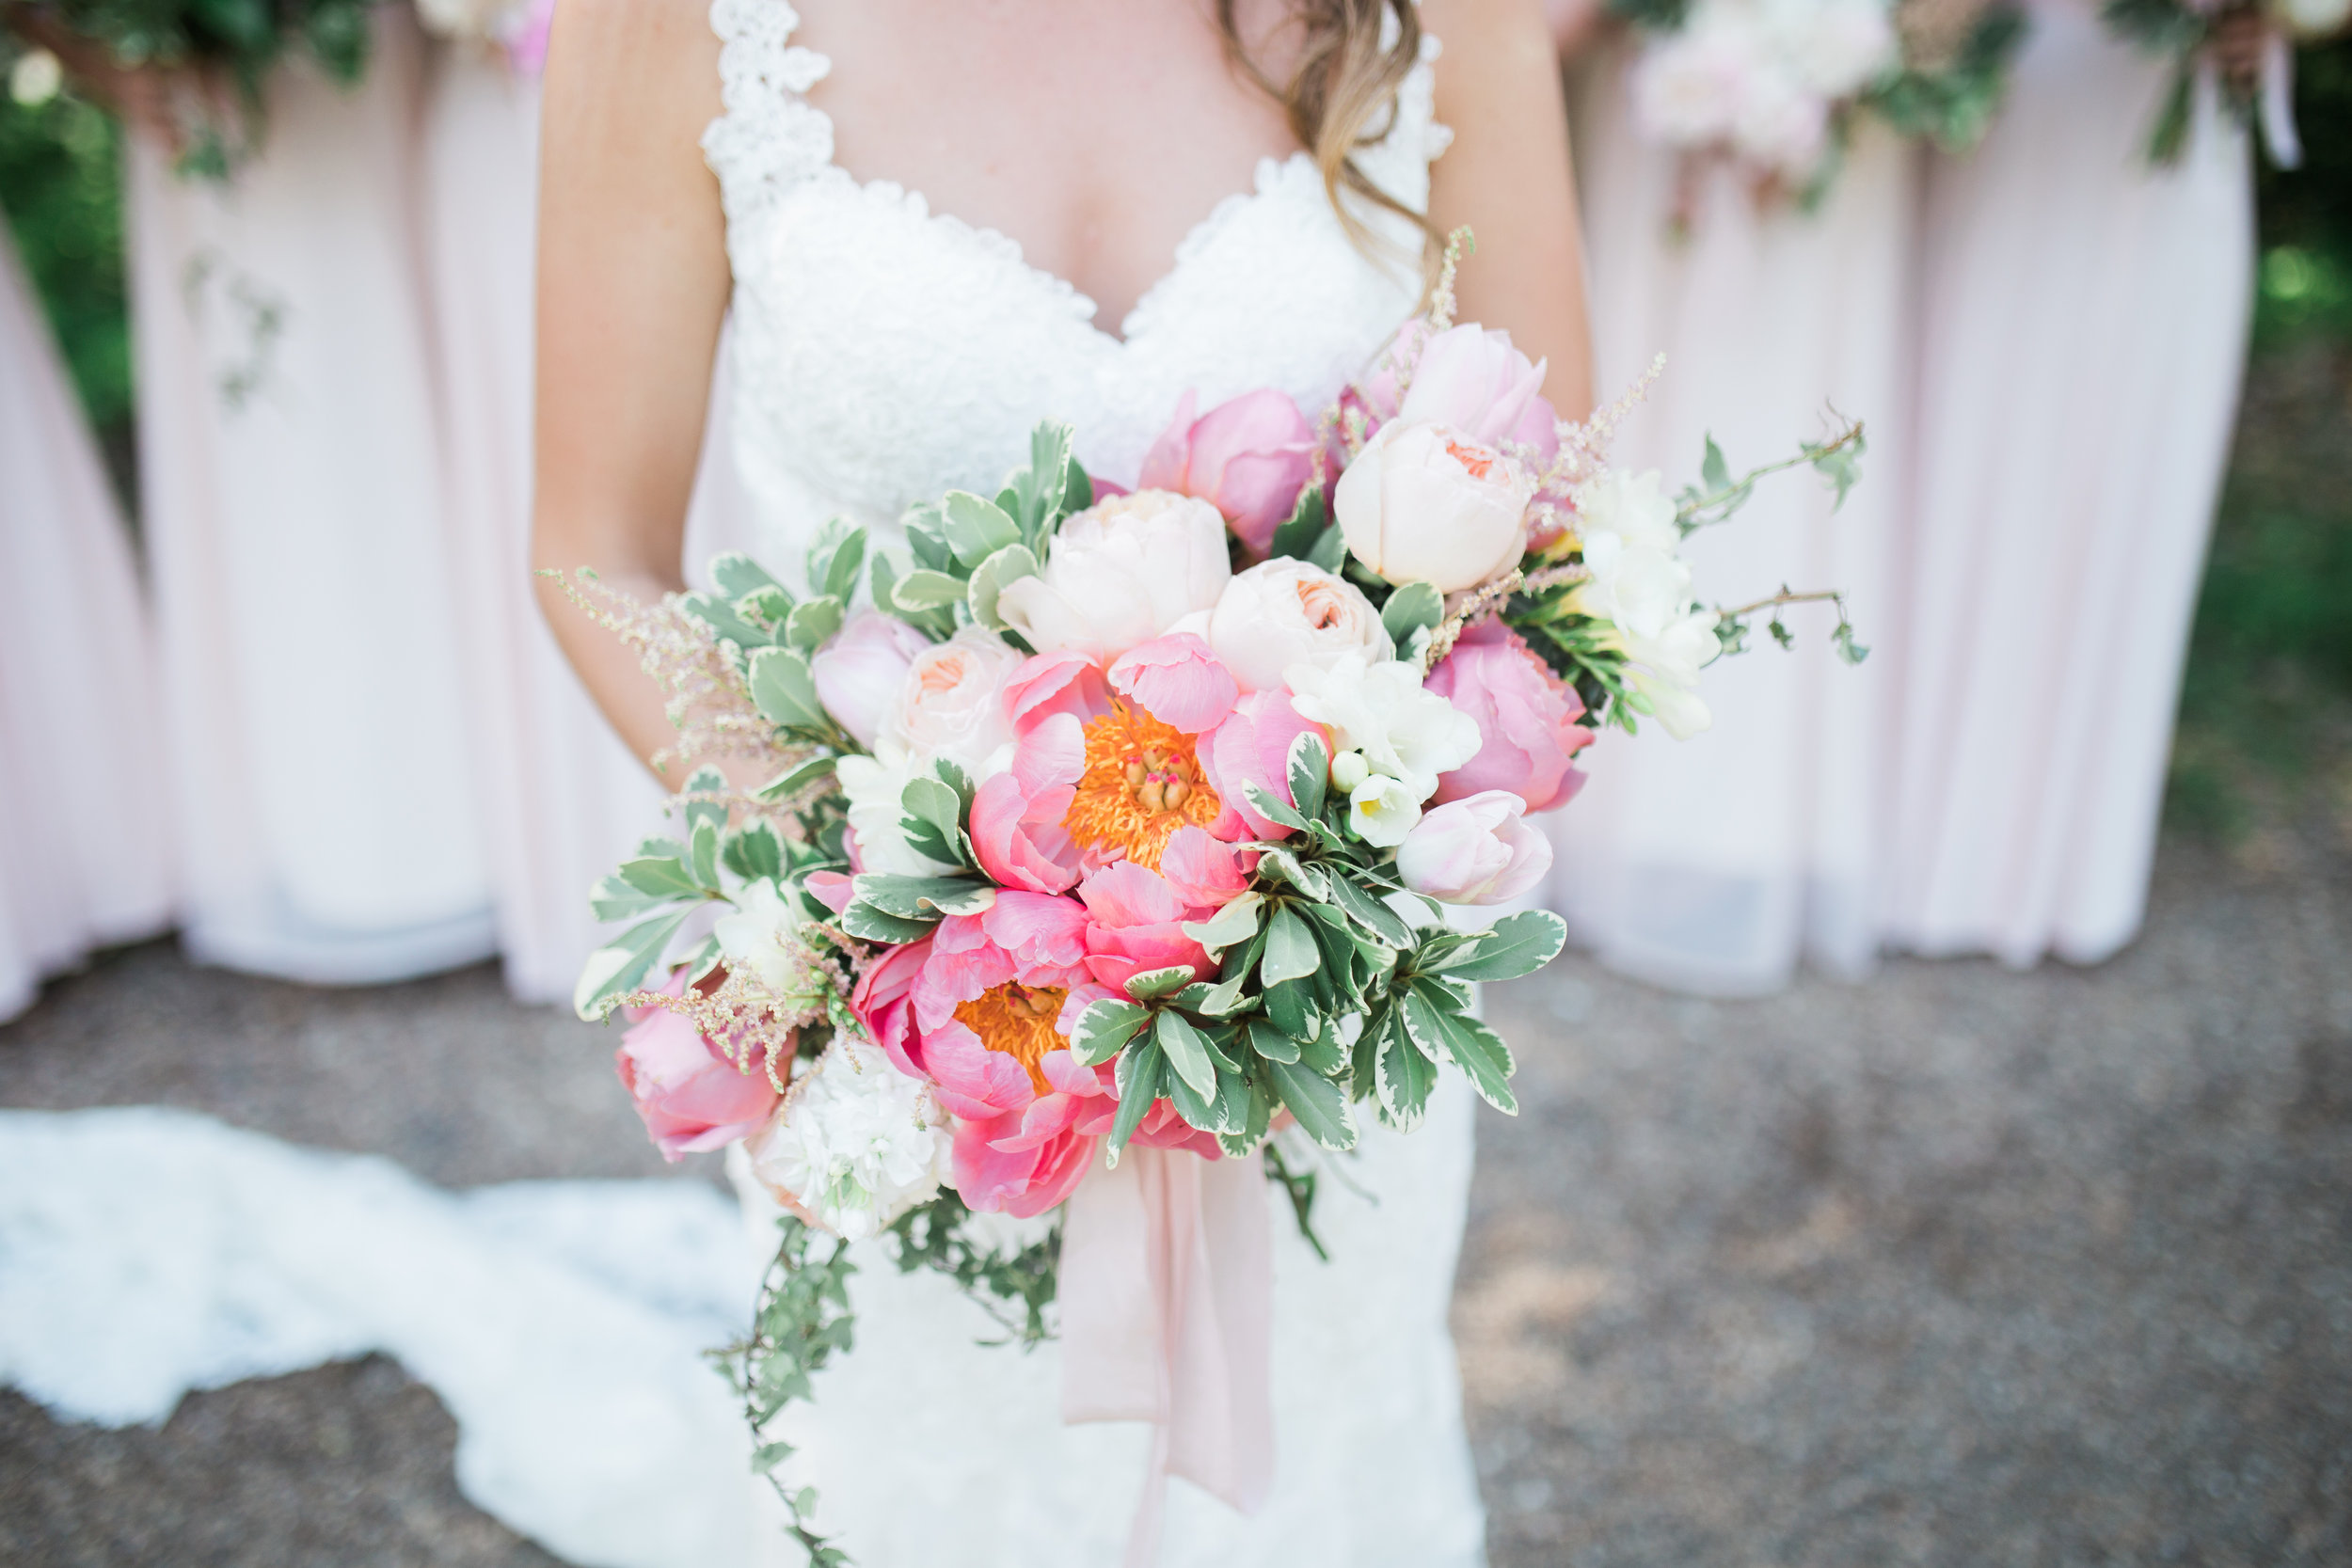 Wedding Flowers | Loveshyla.com | Coral charm peony, garden roses, romantic, blush pink